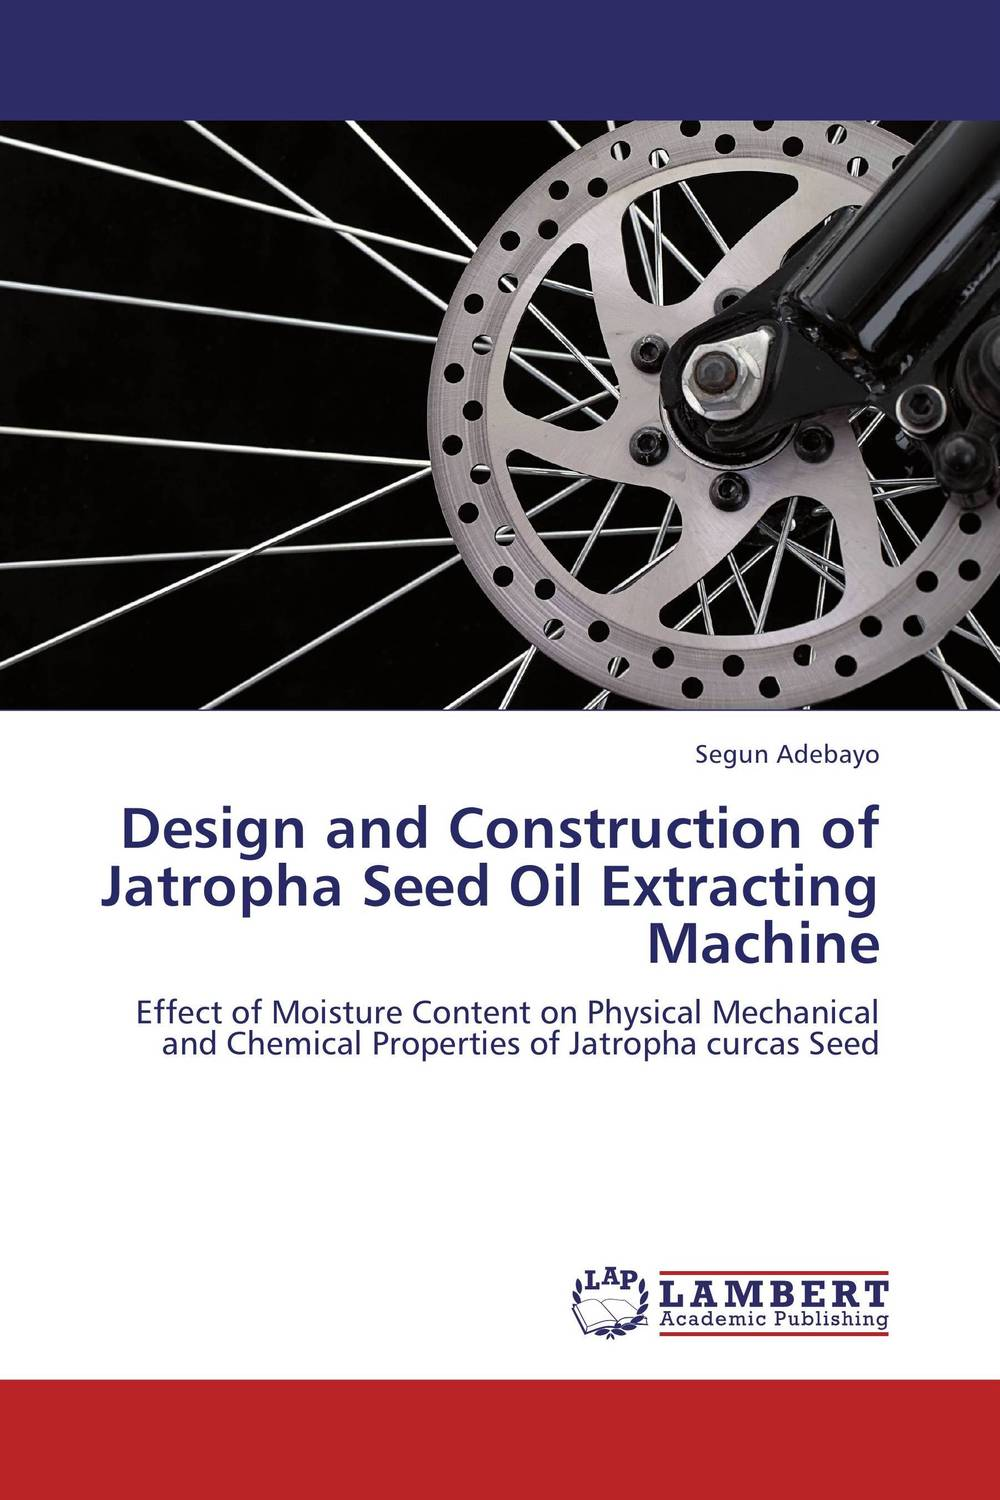 Design and Construction of Jatropha Seed Oil Extracting Machine seed dormancy and germination